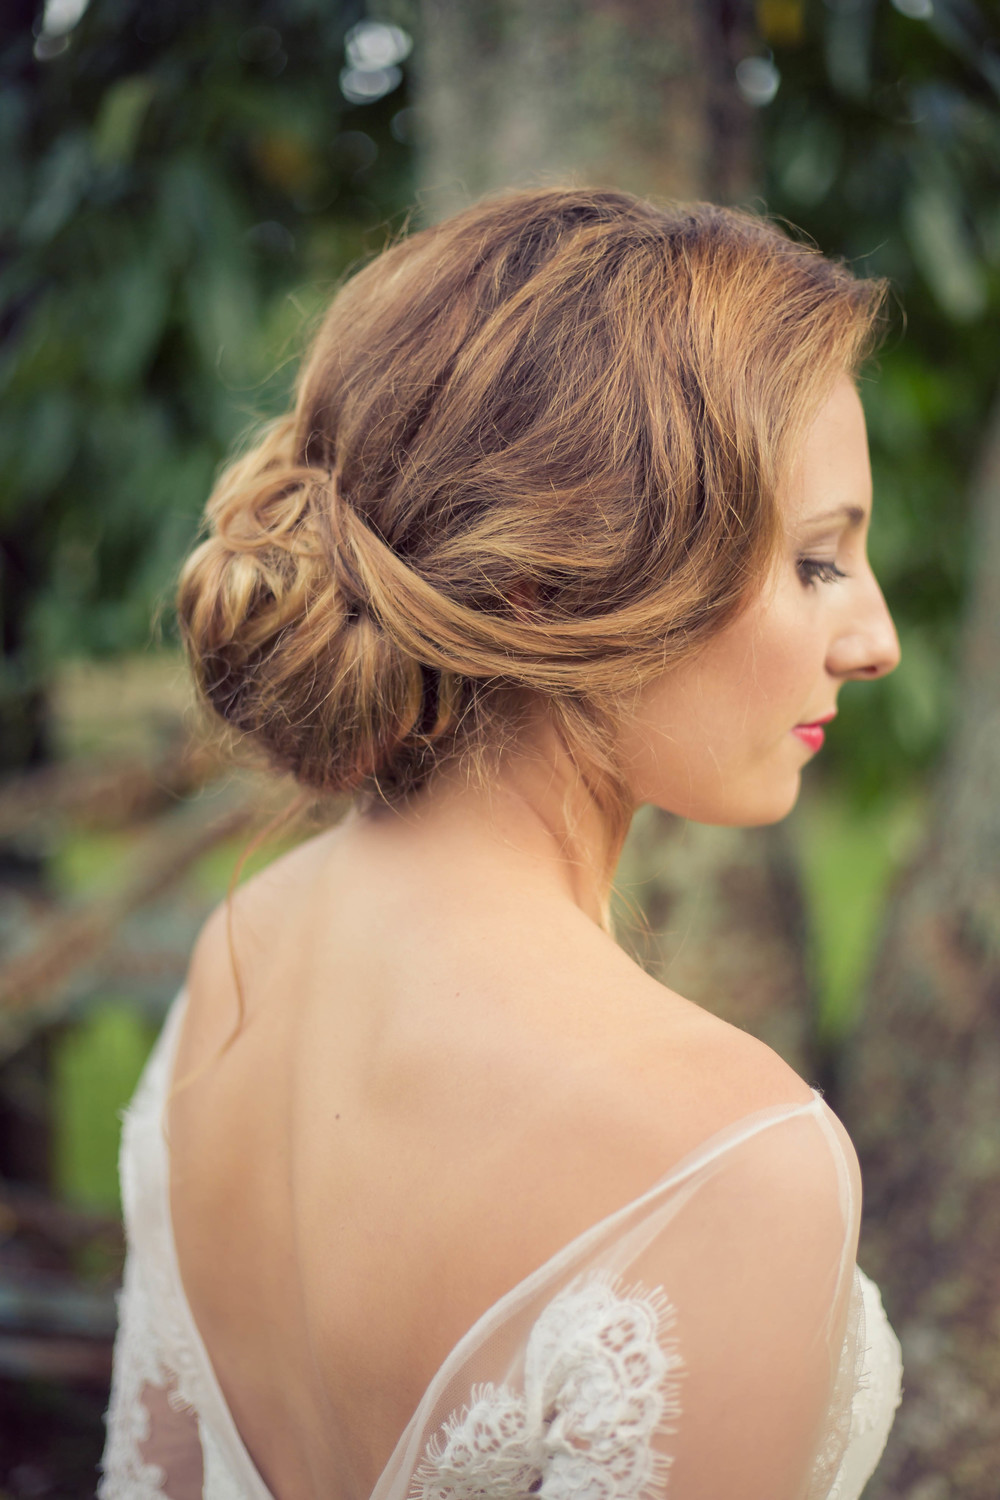 Wedding hair - soft romantic up do | Dutch wedding shoot | Photography by Tranquility Photography | Gown available at Astra Bridal | www.borrowedandblue.kiwi